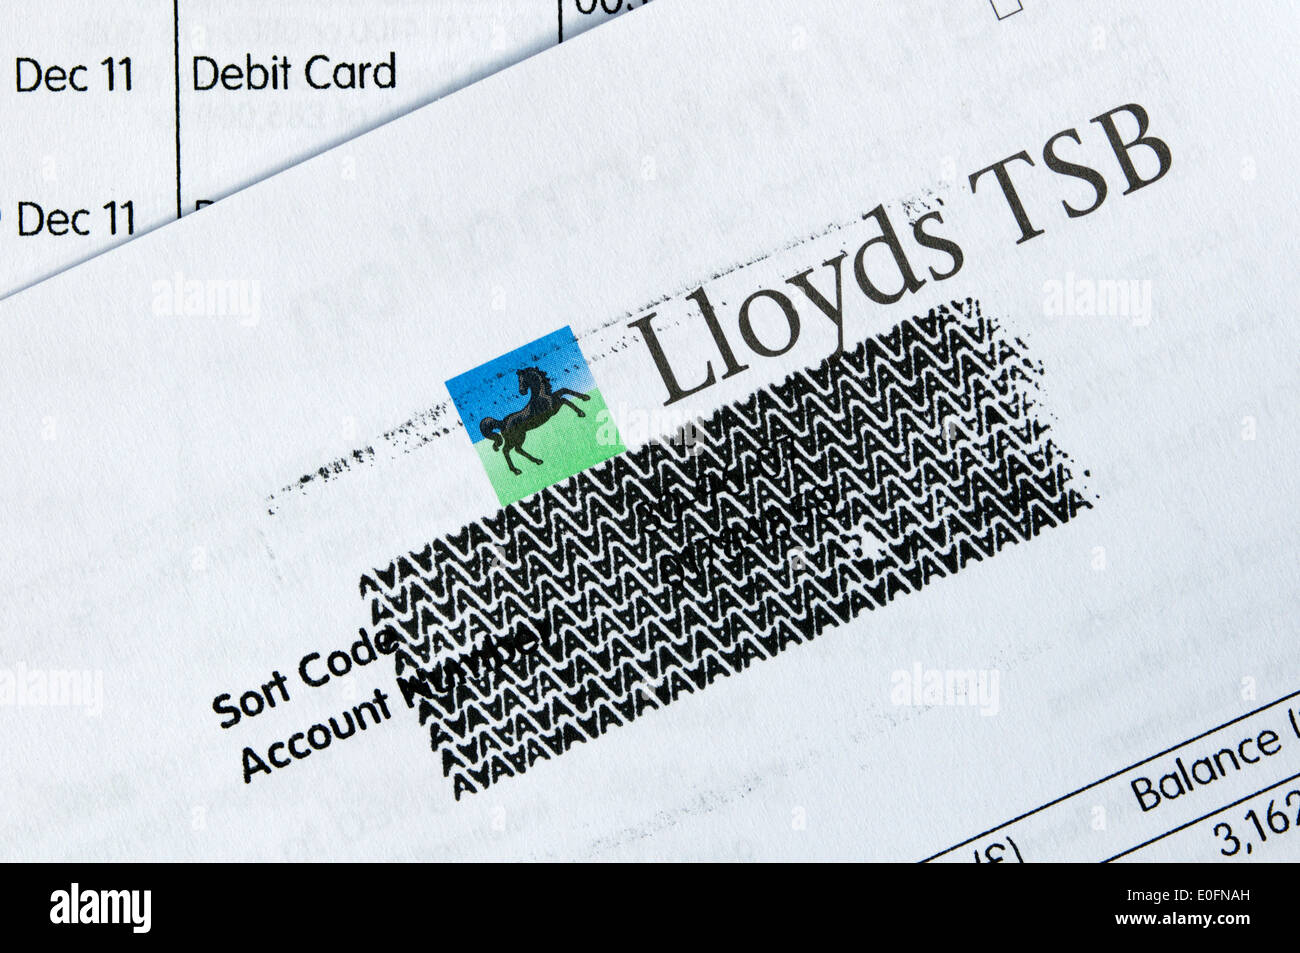 Personal financial details on a bank statement securely obscured before it is thrown away. - Stock Image